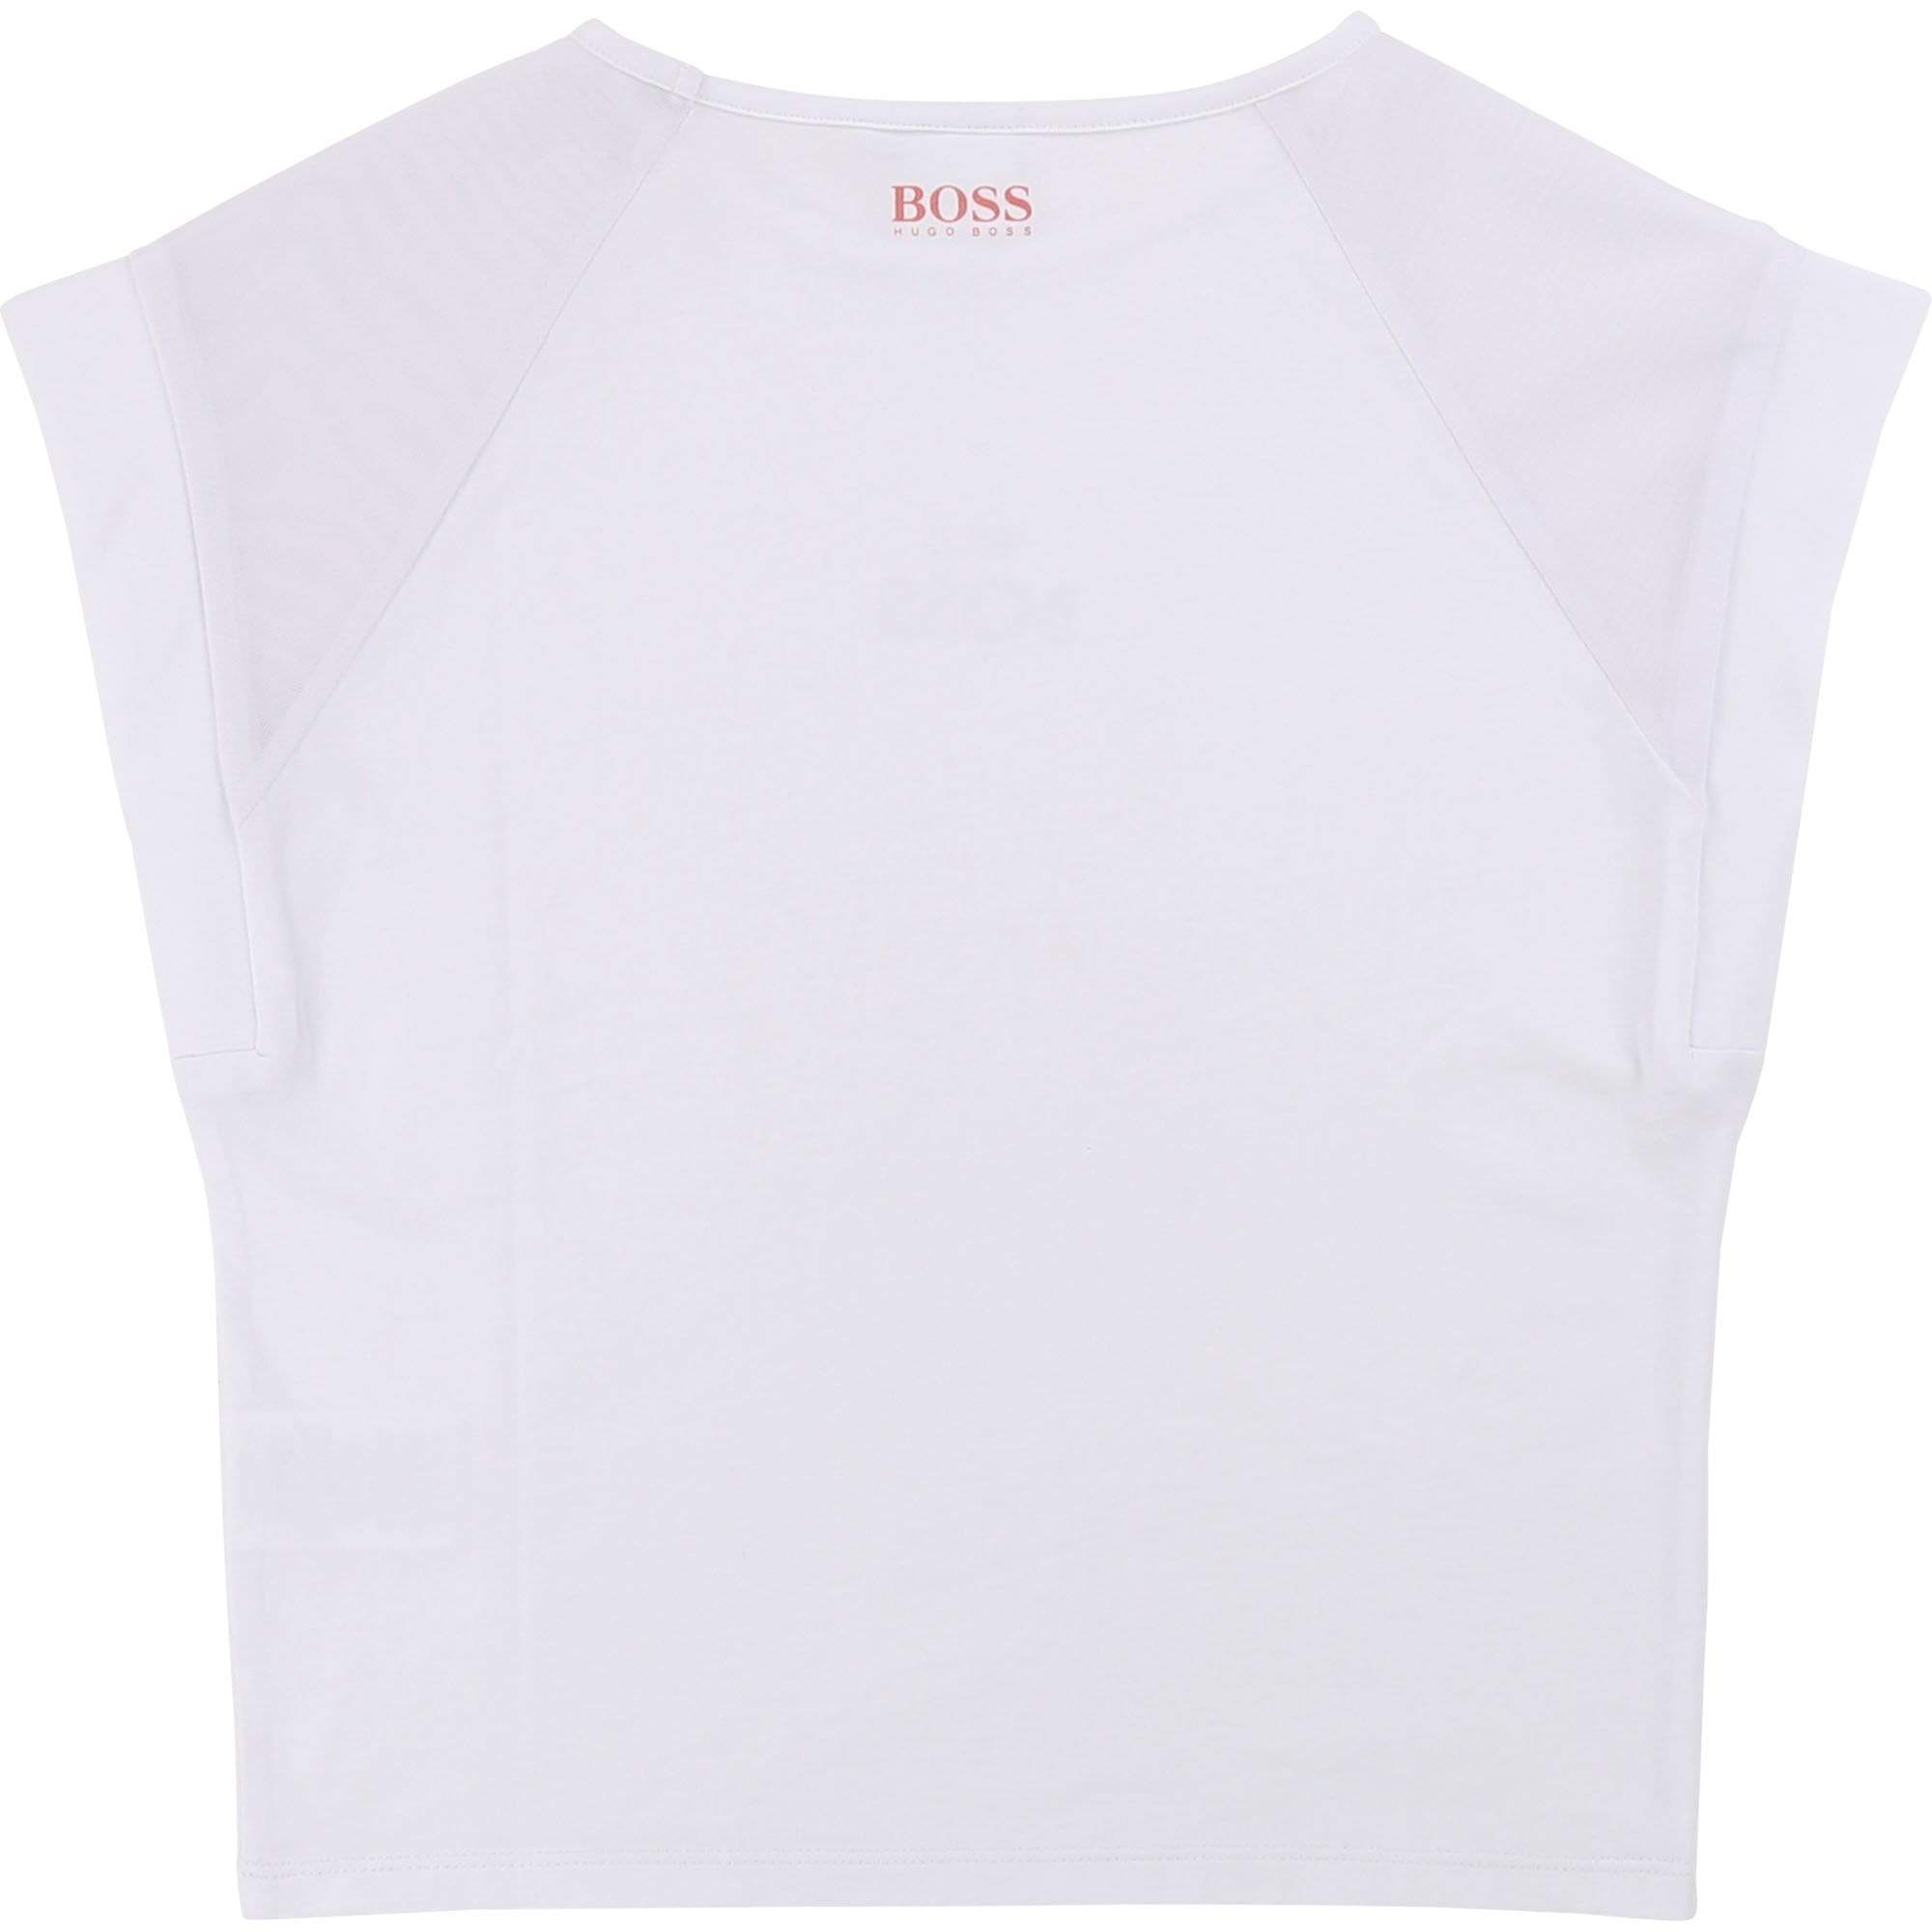 Hugo Boss Chandails Chandail blanc This is Boss T-shirt